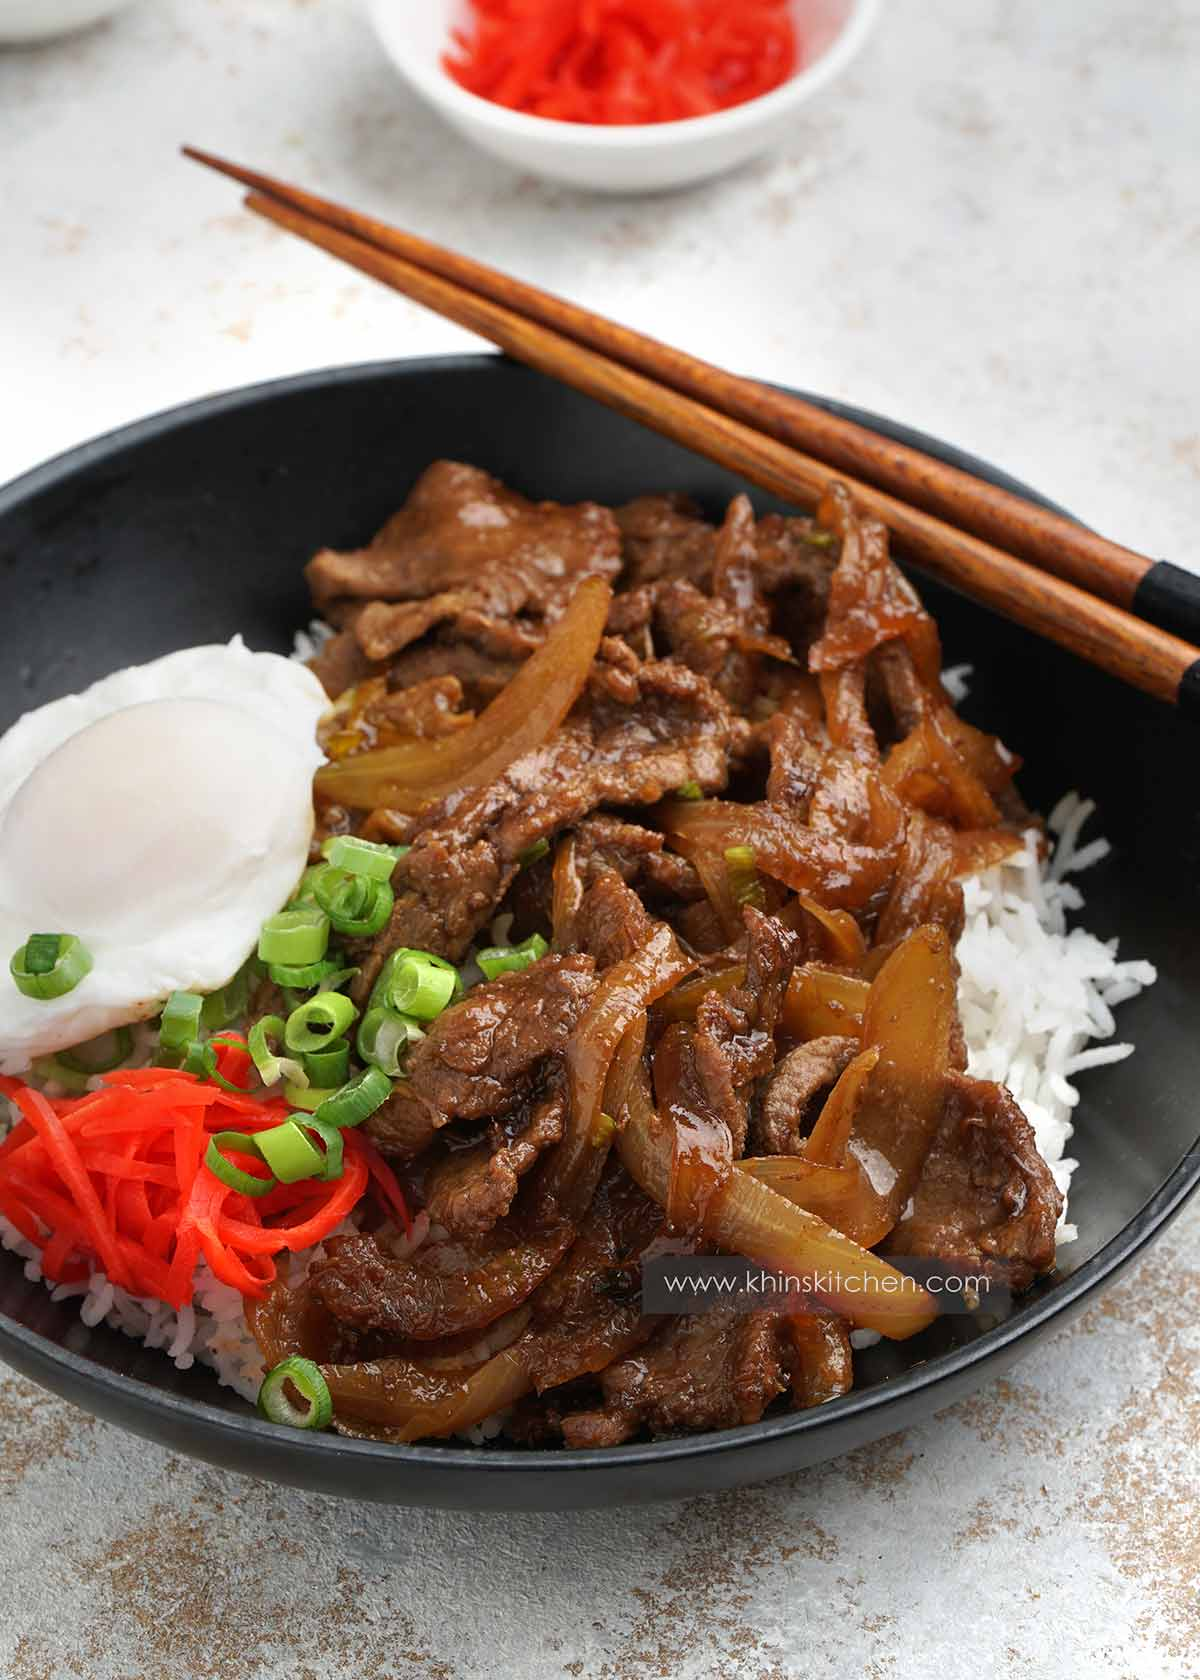 A bowl of japanese style beef stir fry with egg on the side and pickle.